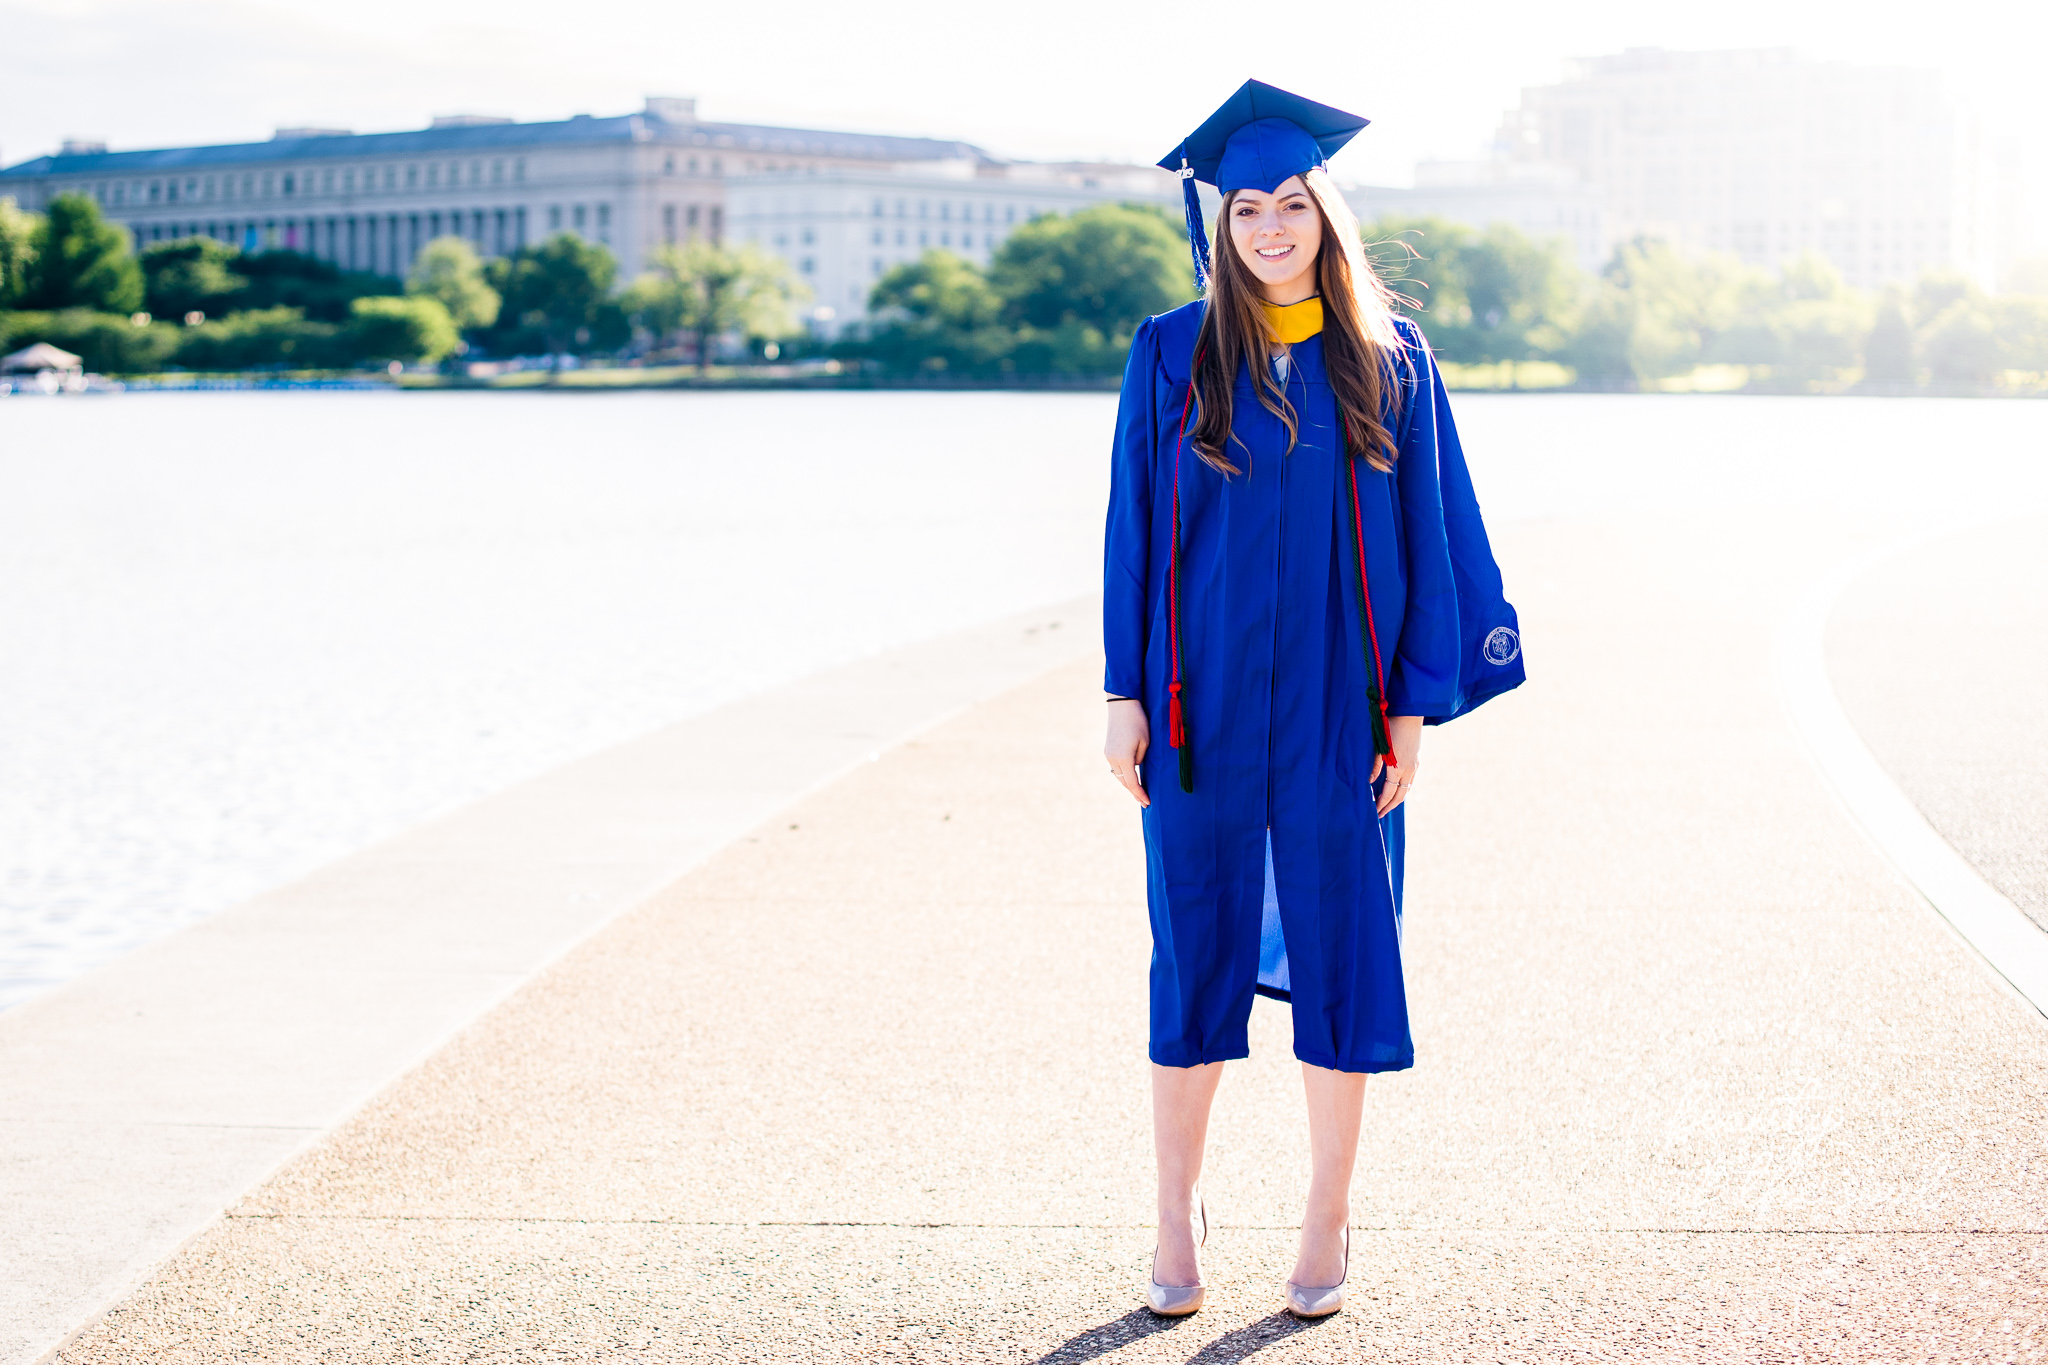 A graduate from Marymount University in Arlington, Northern Virginia standing beside the Potomac River at the Tidal Basin for her cap and gown session in Washington, DC